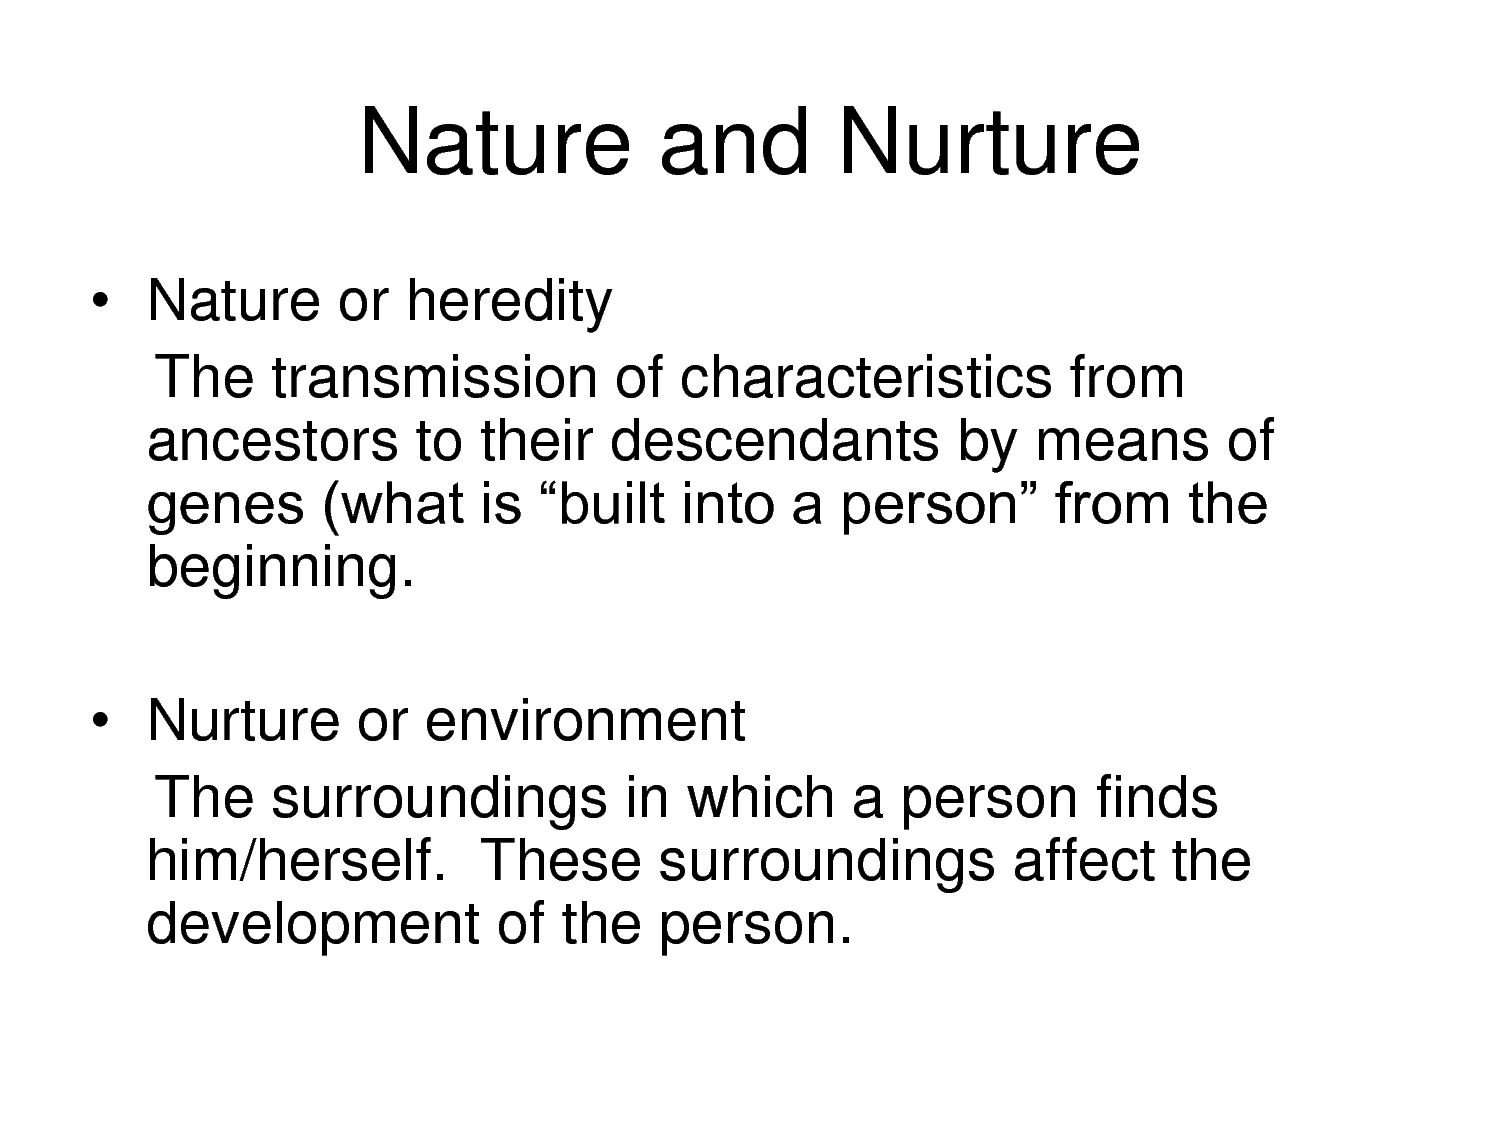 william wordsworth and nature essay example Free wordsworth nature papers, essays, and research papers.